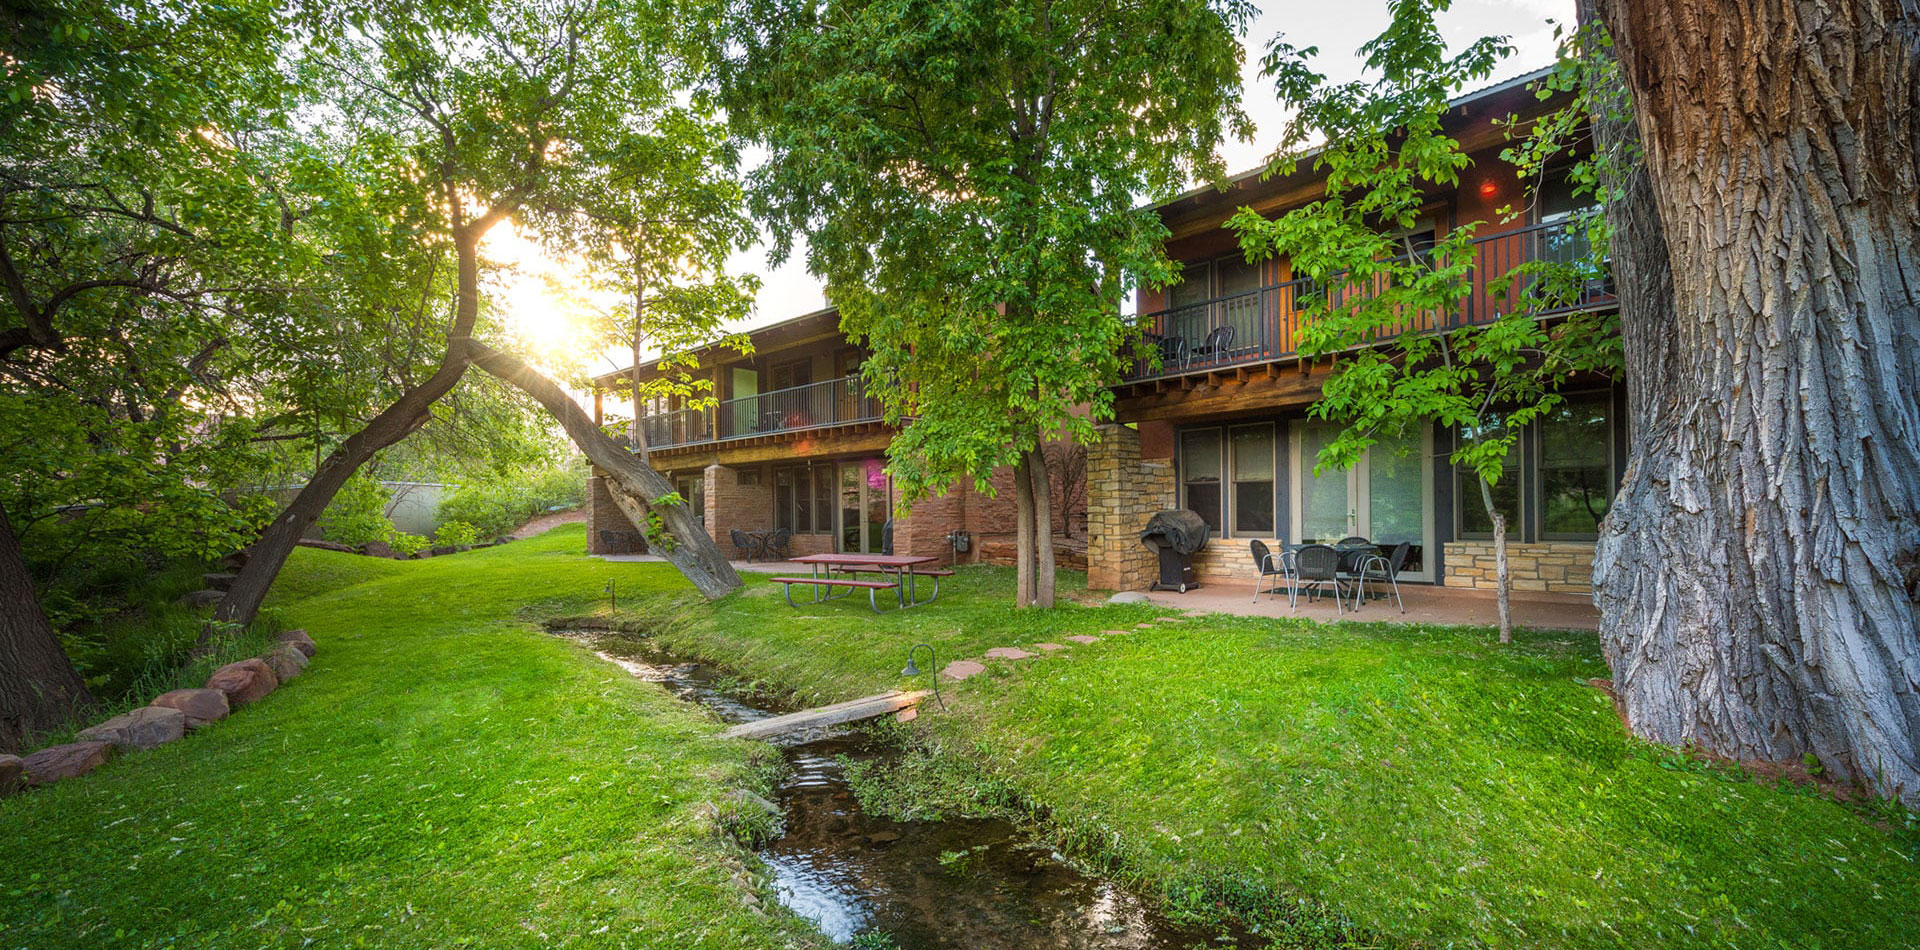 Panoramic view of two townhouse units at Moab Springs Ranch facing vibrant green lawns, cottonwood trees and a shallow stream.